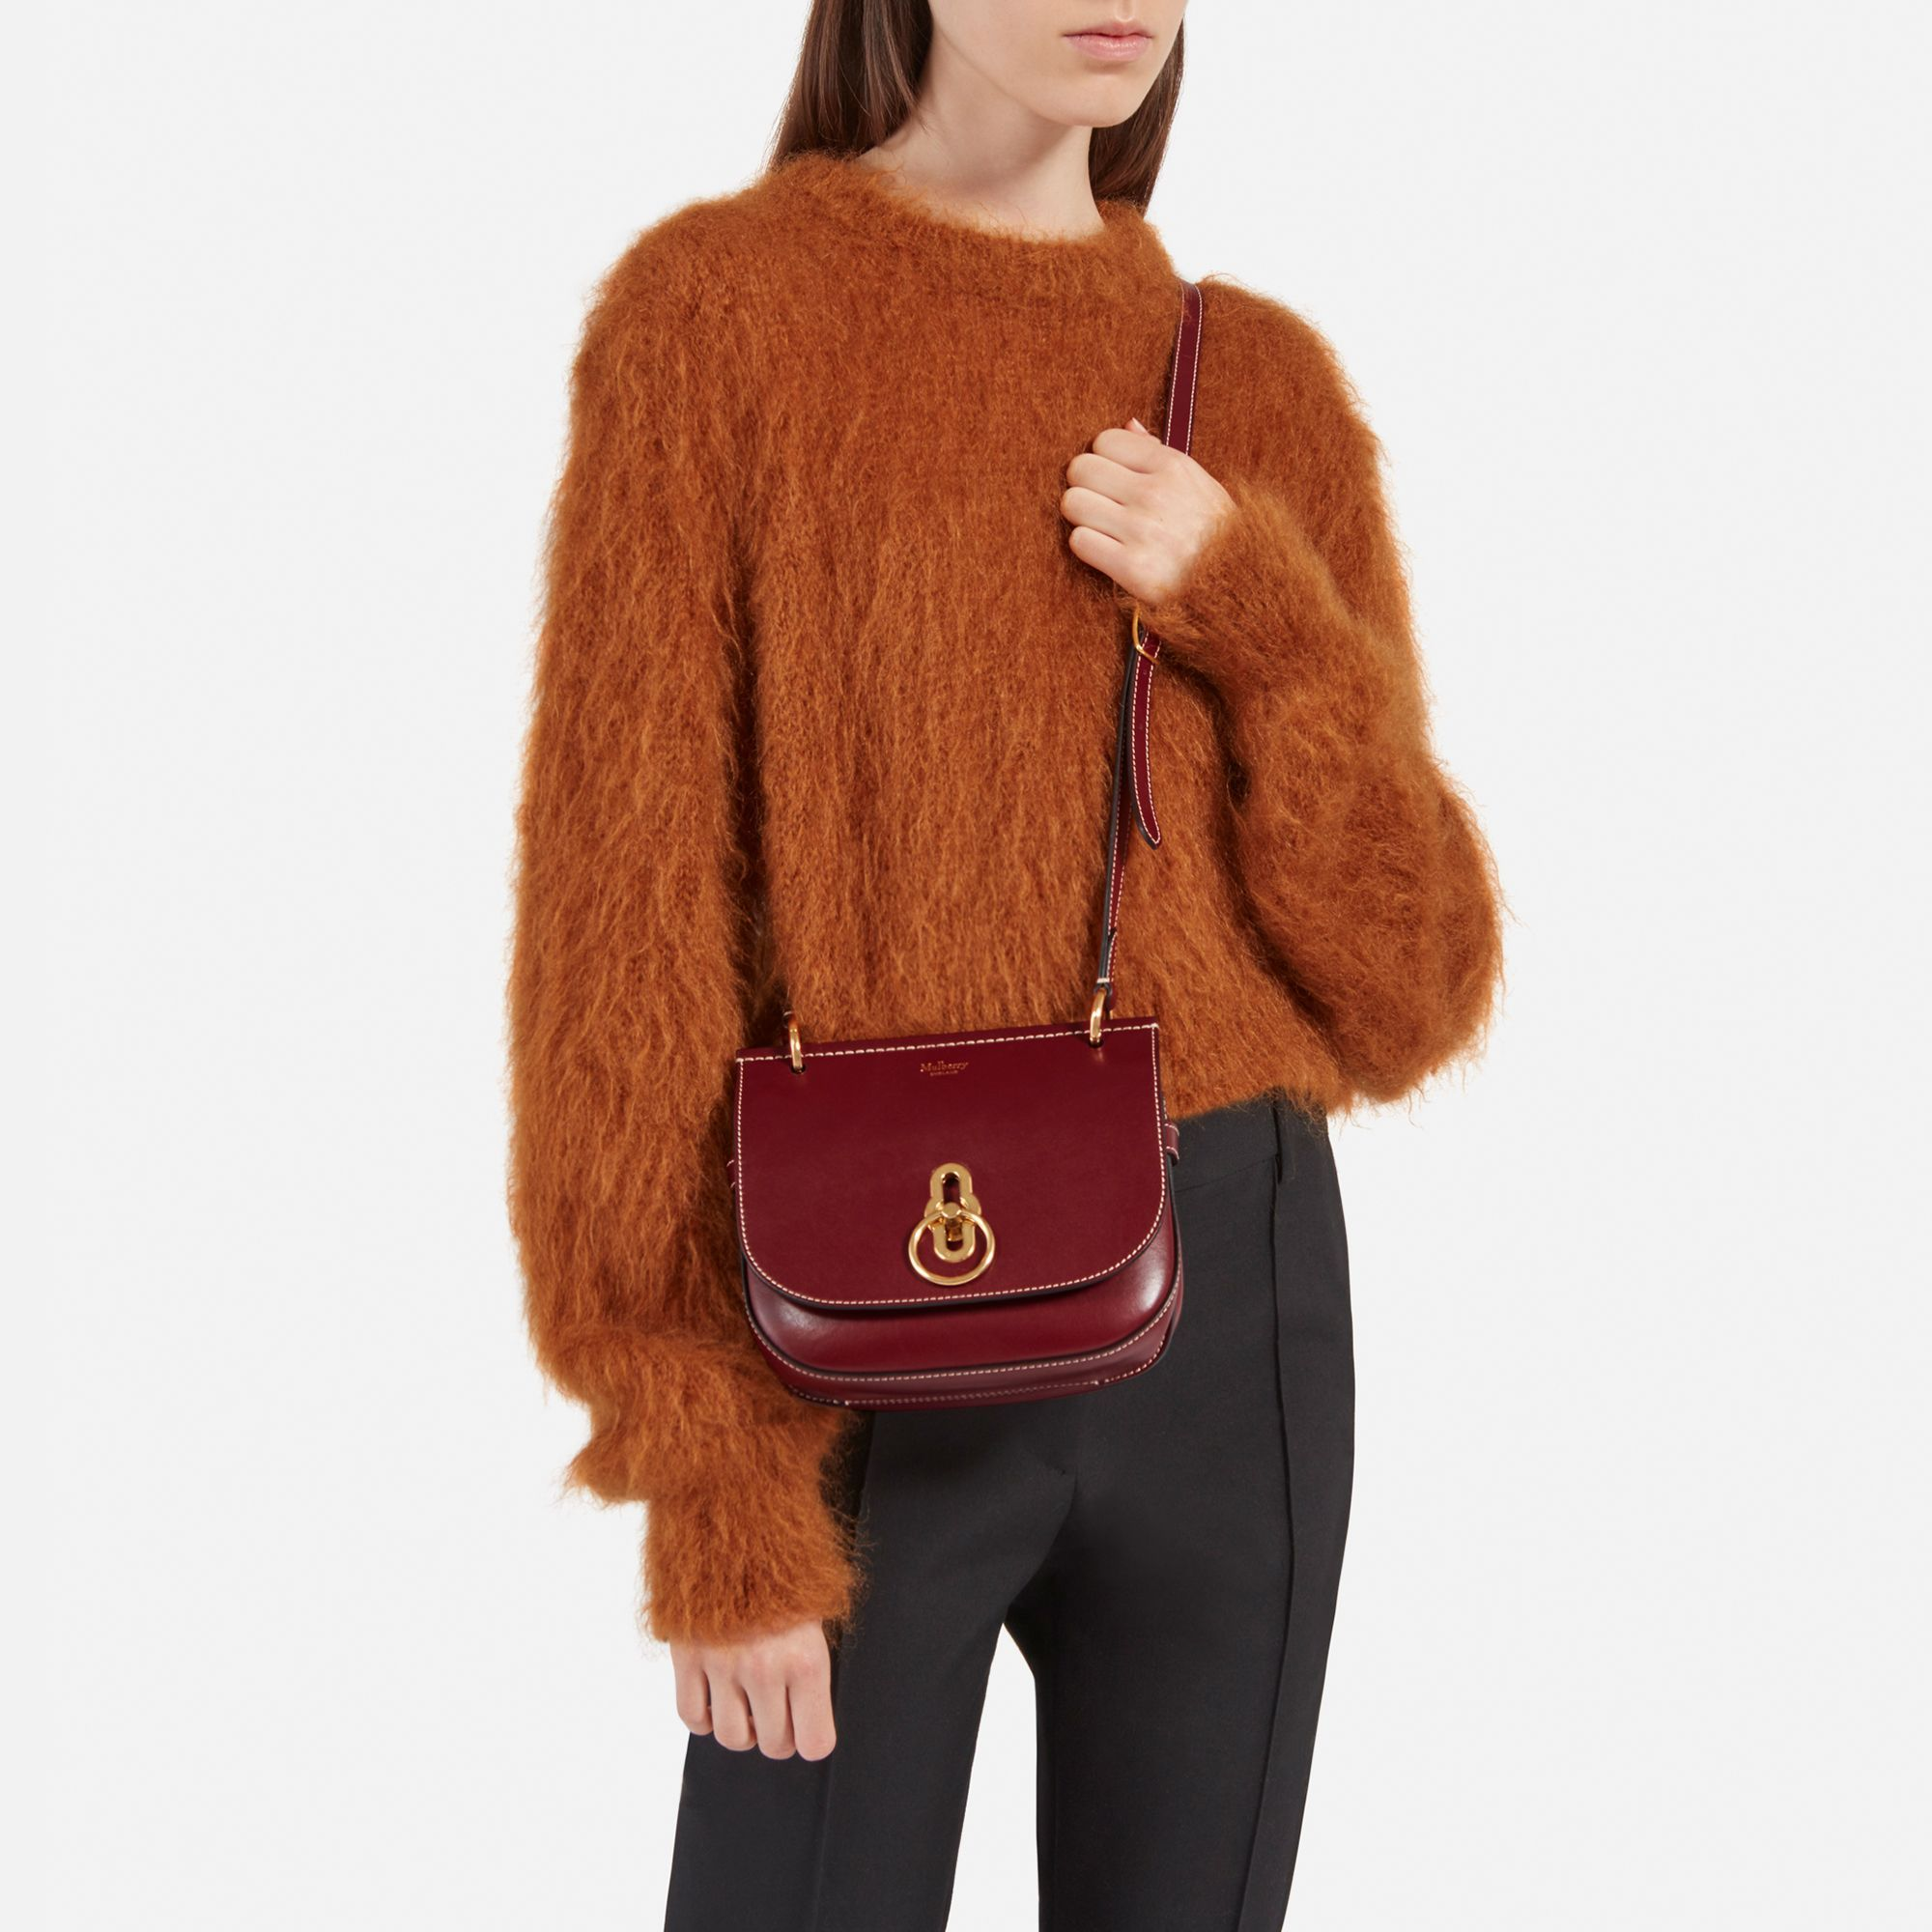 ccd45be18e Shop the Small Amberley Satchel in Crimson Silky Calf Leather at Mulberry.com.  Inspired